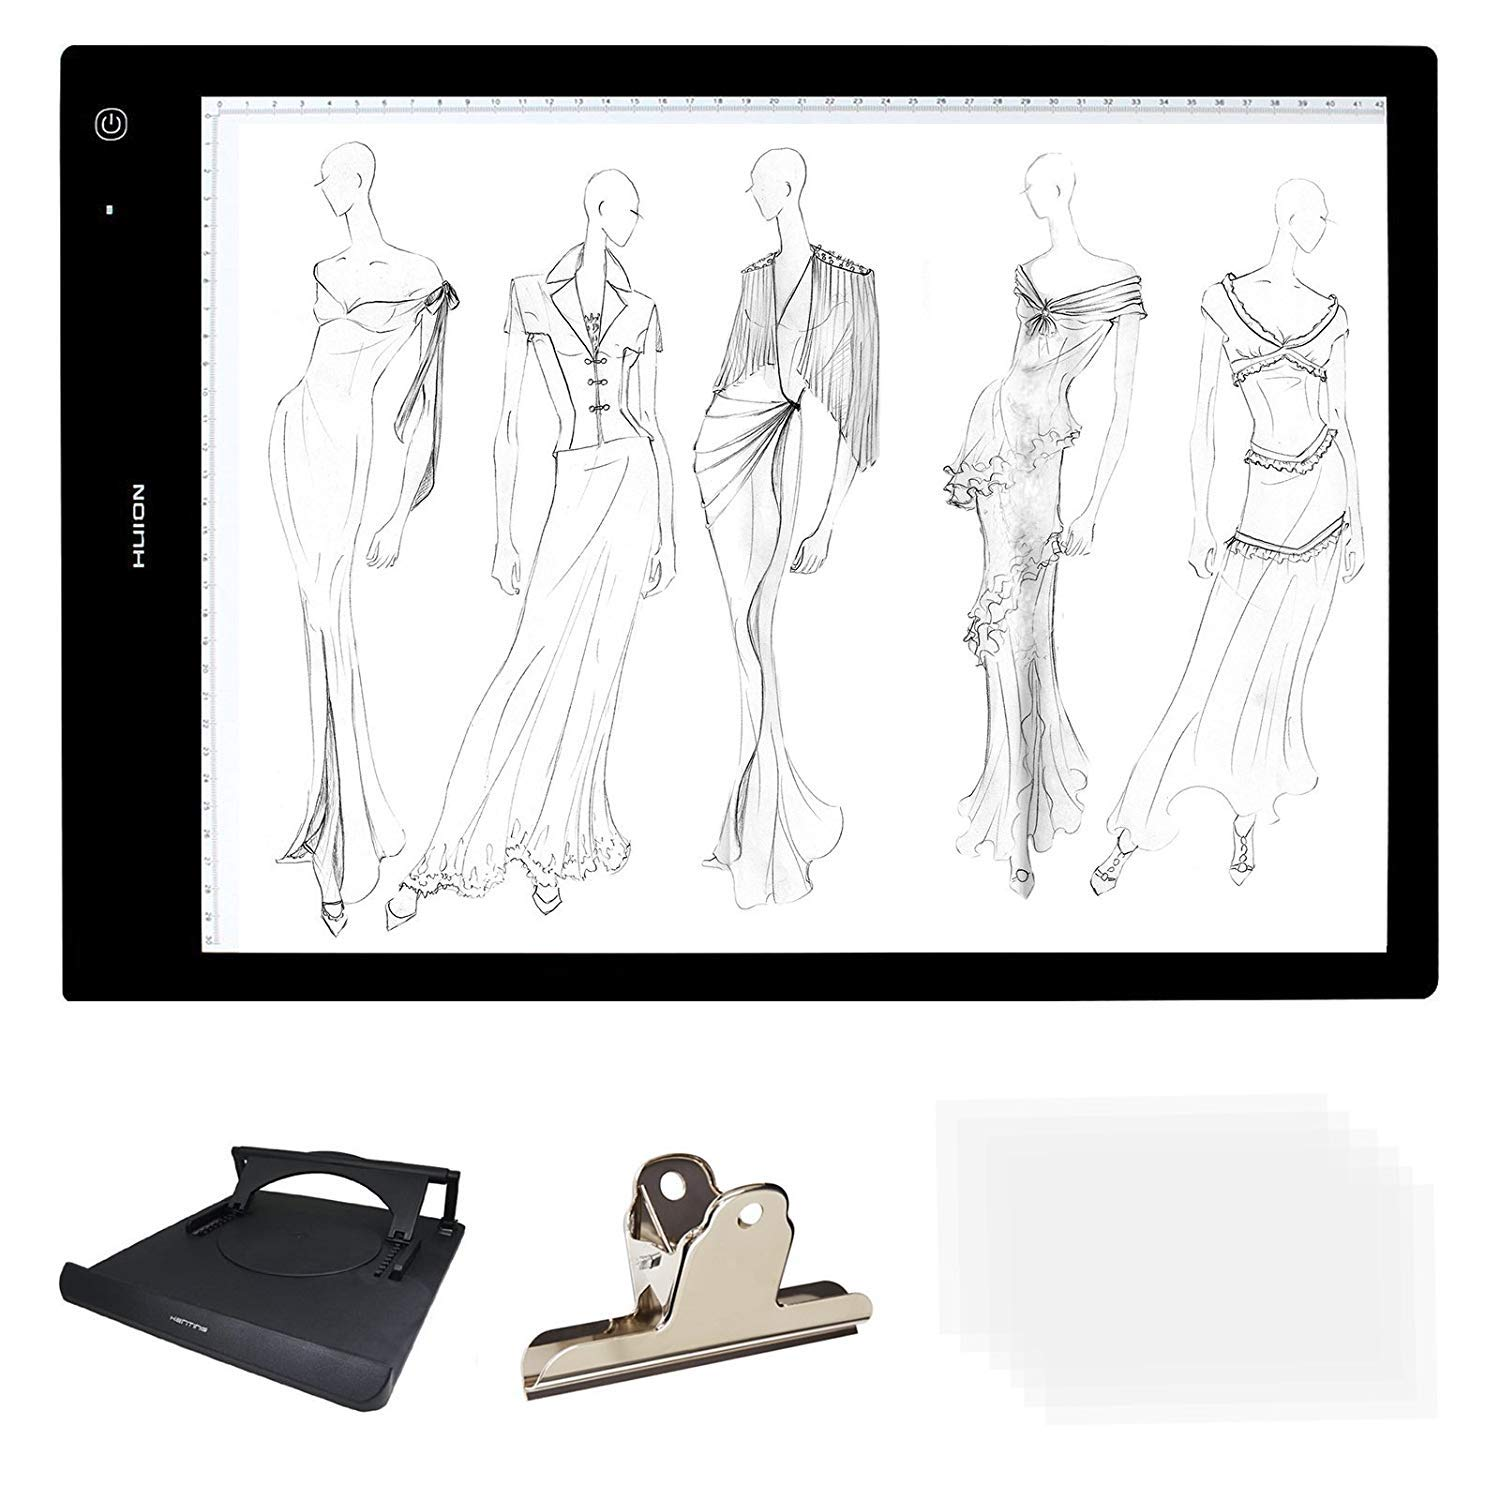 HUION A3 Size Lightness Adjustable Built-In Battery USB Cable Drawing Tracing Stencil Board Tattoo Light Box with Kenting Stander, Clip, 6 Pcs of Tracing Paper, Cleaning Cloth by HUION